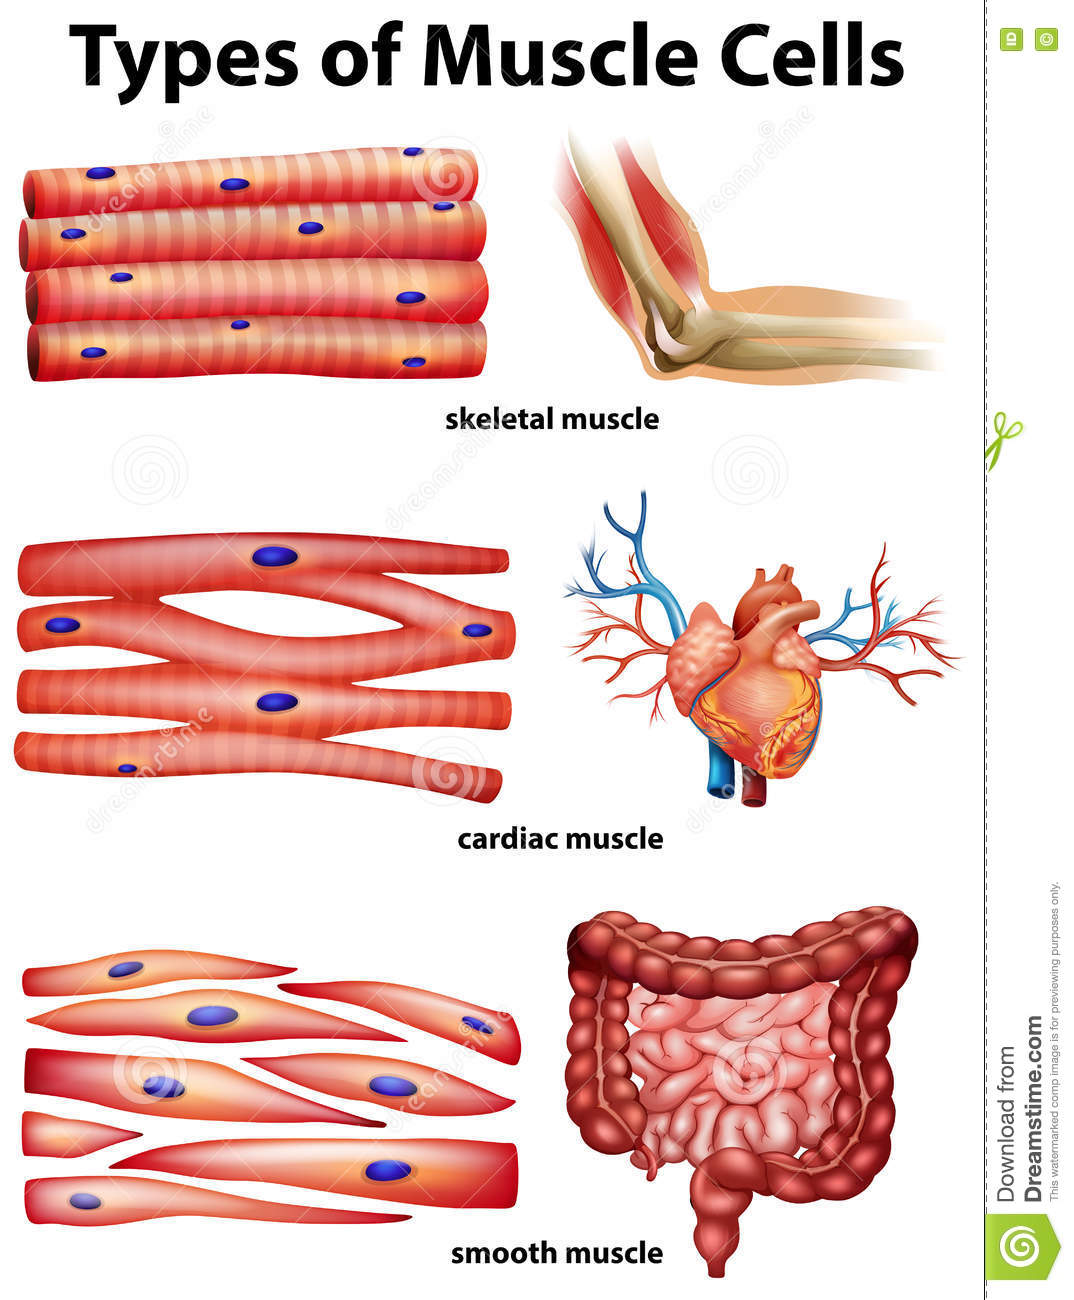 human muscle cell diagram winter in space showing types of cells stock vector